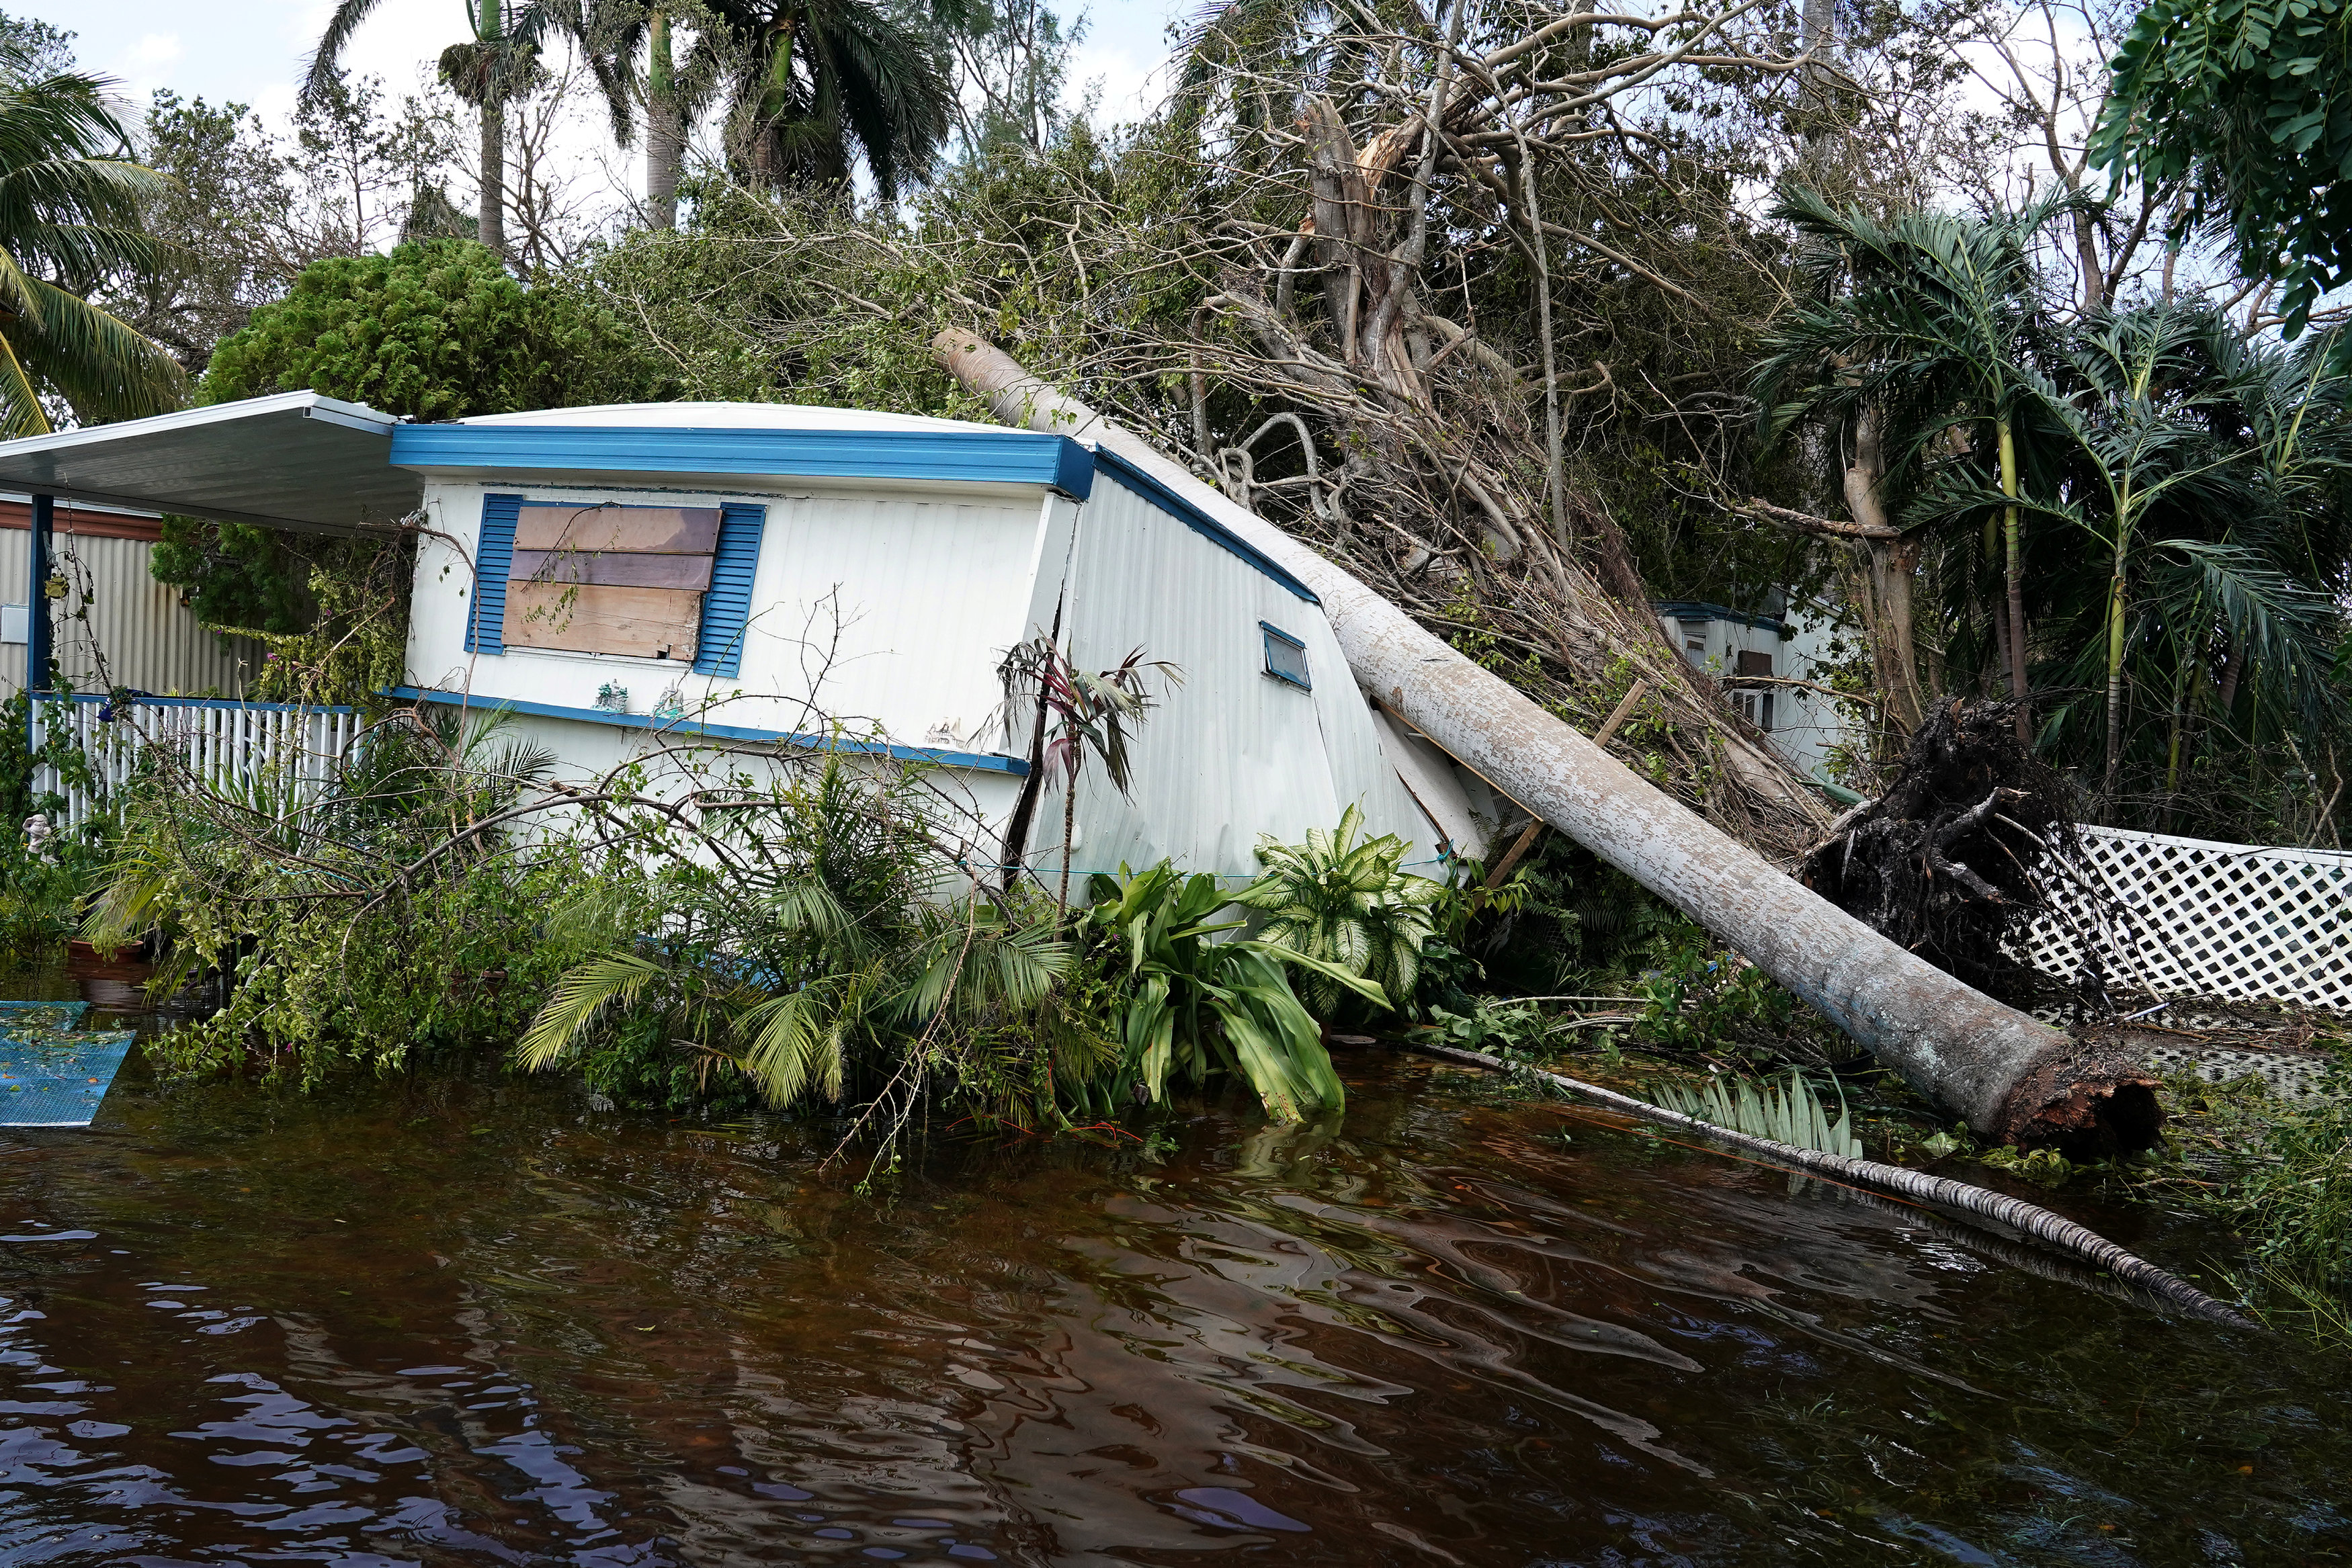 A trailer in a trailer park is pictured following Hurricane Irma in Key Biscayne, Florida on Sept. 11, 2017. (REUTERS/Carlo Allegri)